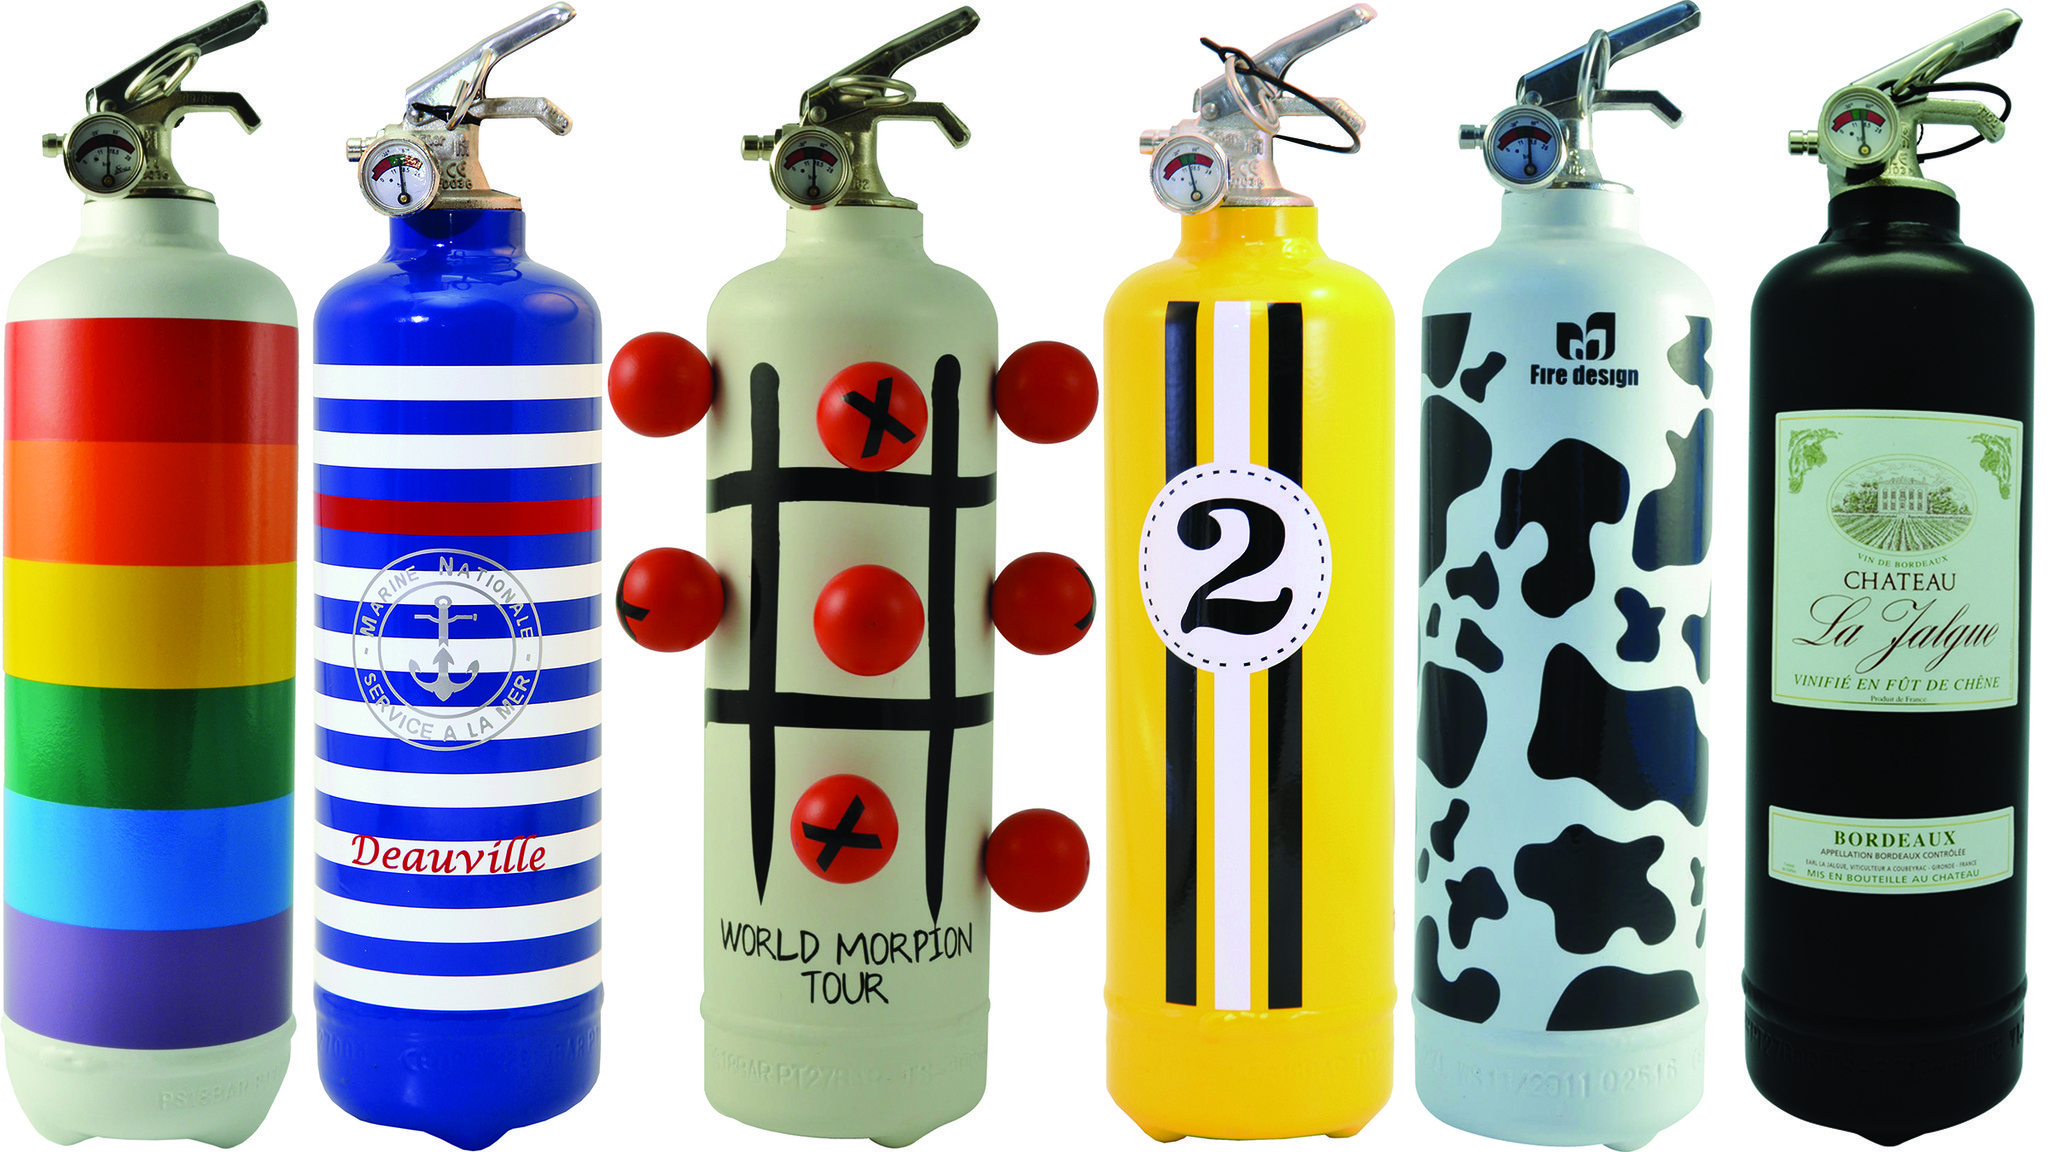 Decorative Fire Extinguisher you've never seen a fire extinguisher that looks like this - la times